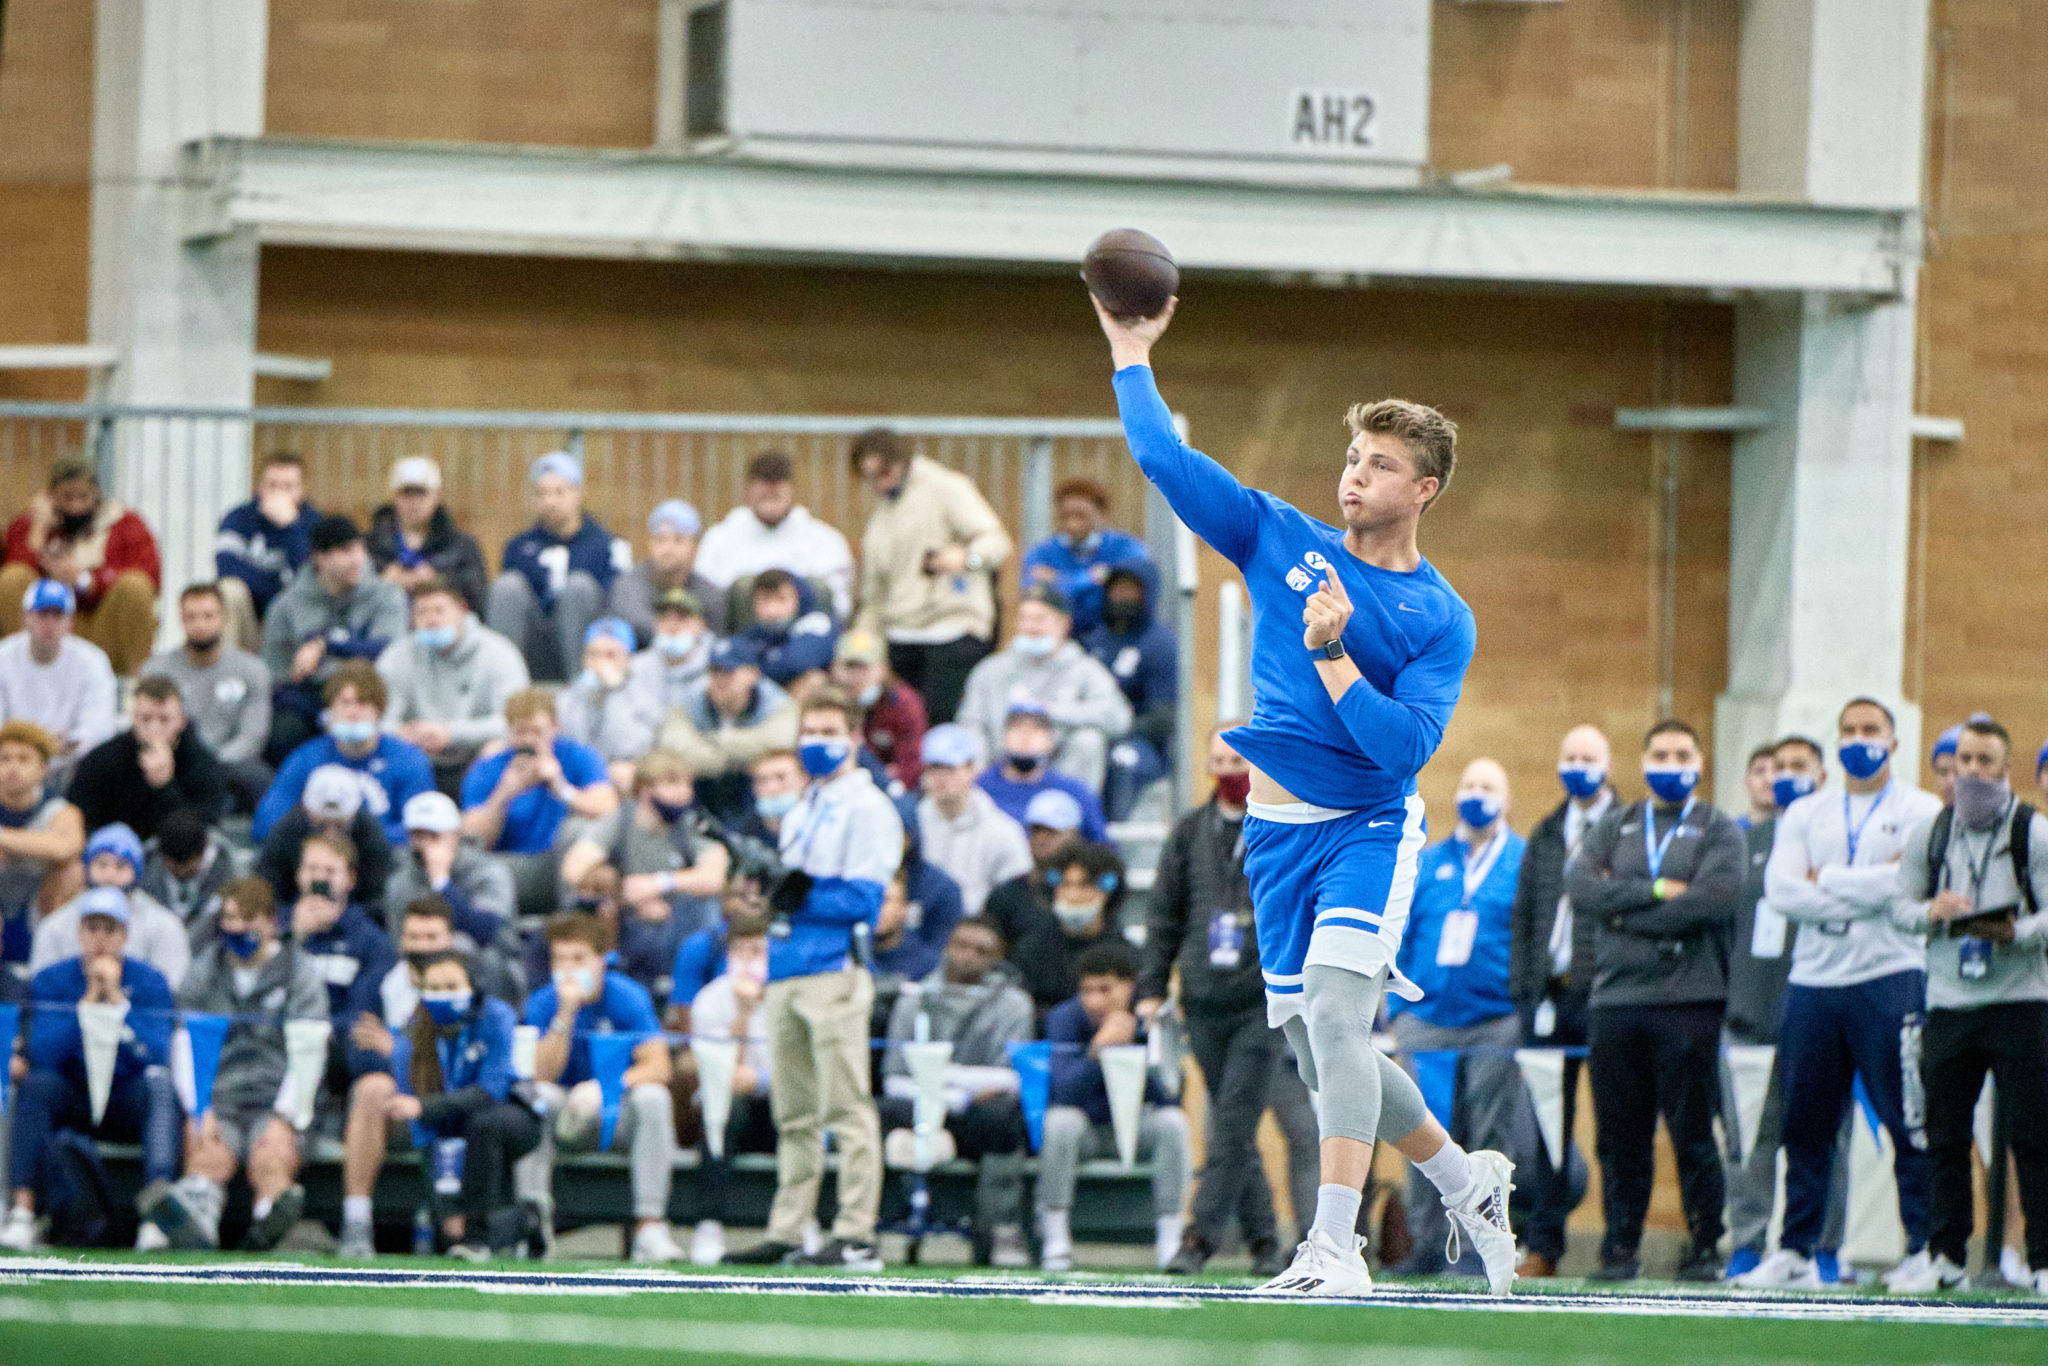 Zach Wilson goes to New York Jets as highest NFL draft pick in BYU Football history